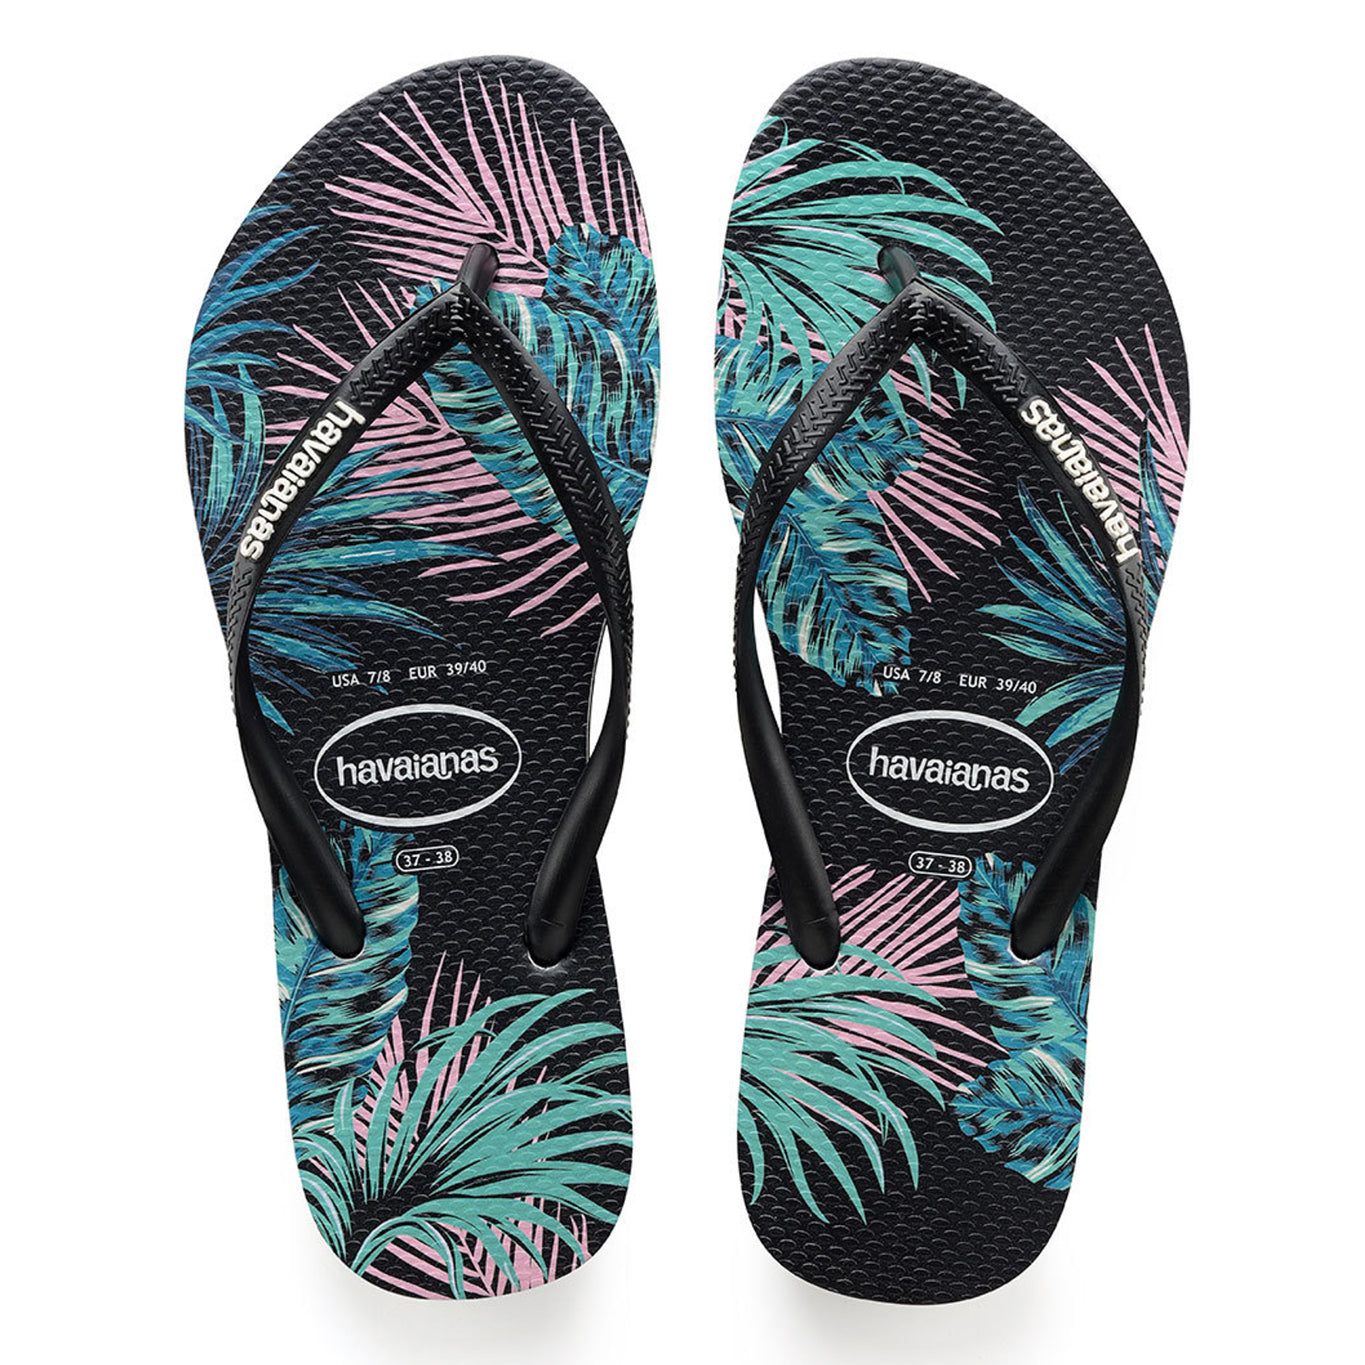 3b2564a04 Havaianas flip flop - Ladies Slim Floral - Black black daybreak – Mint  Escape